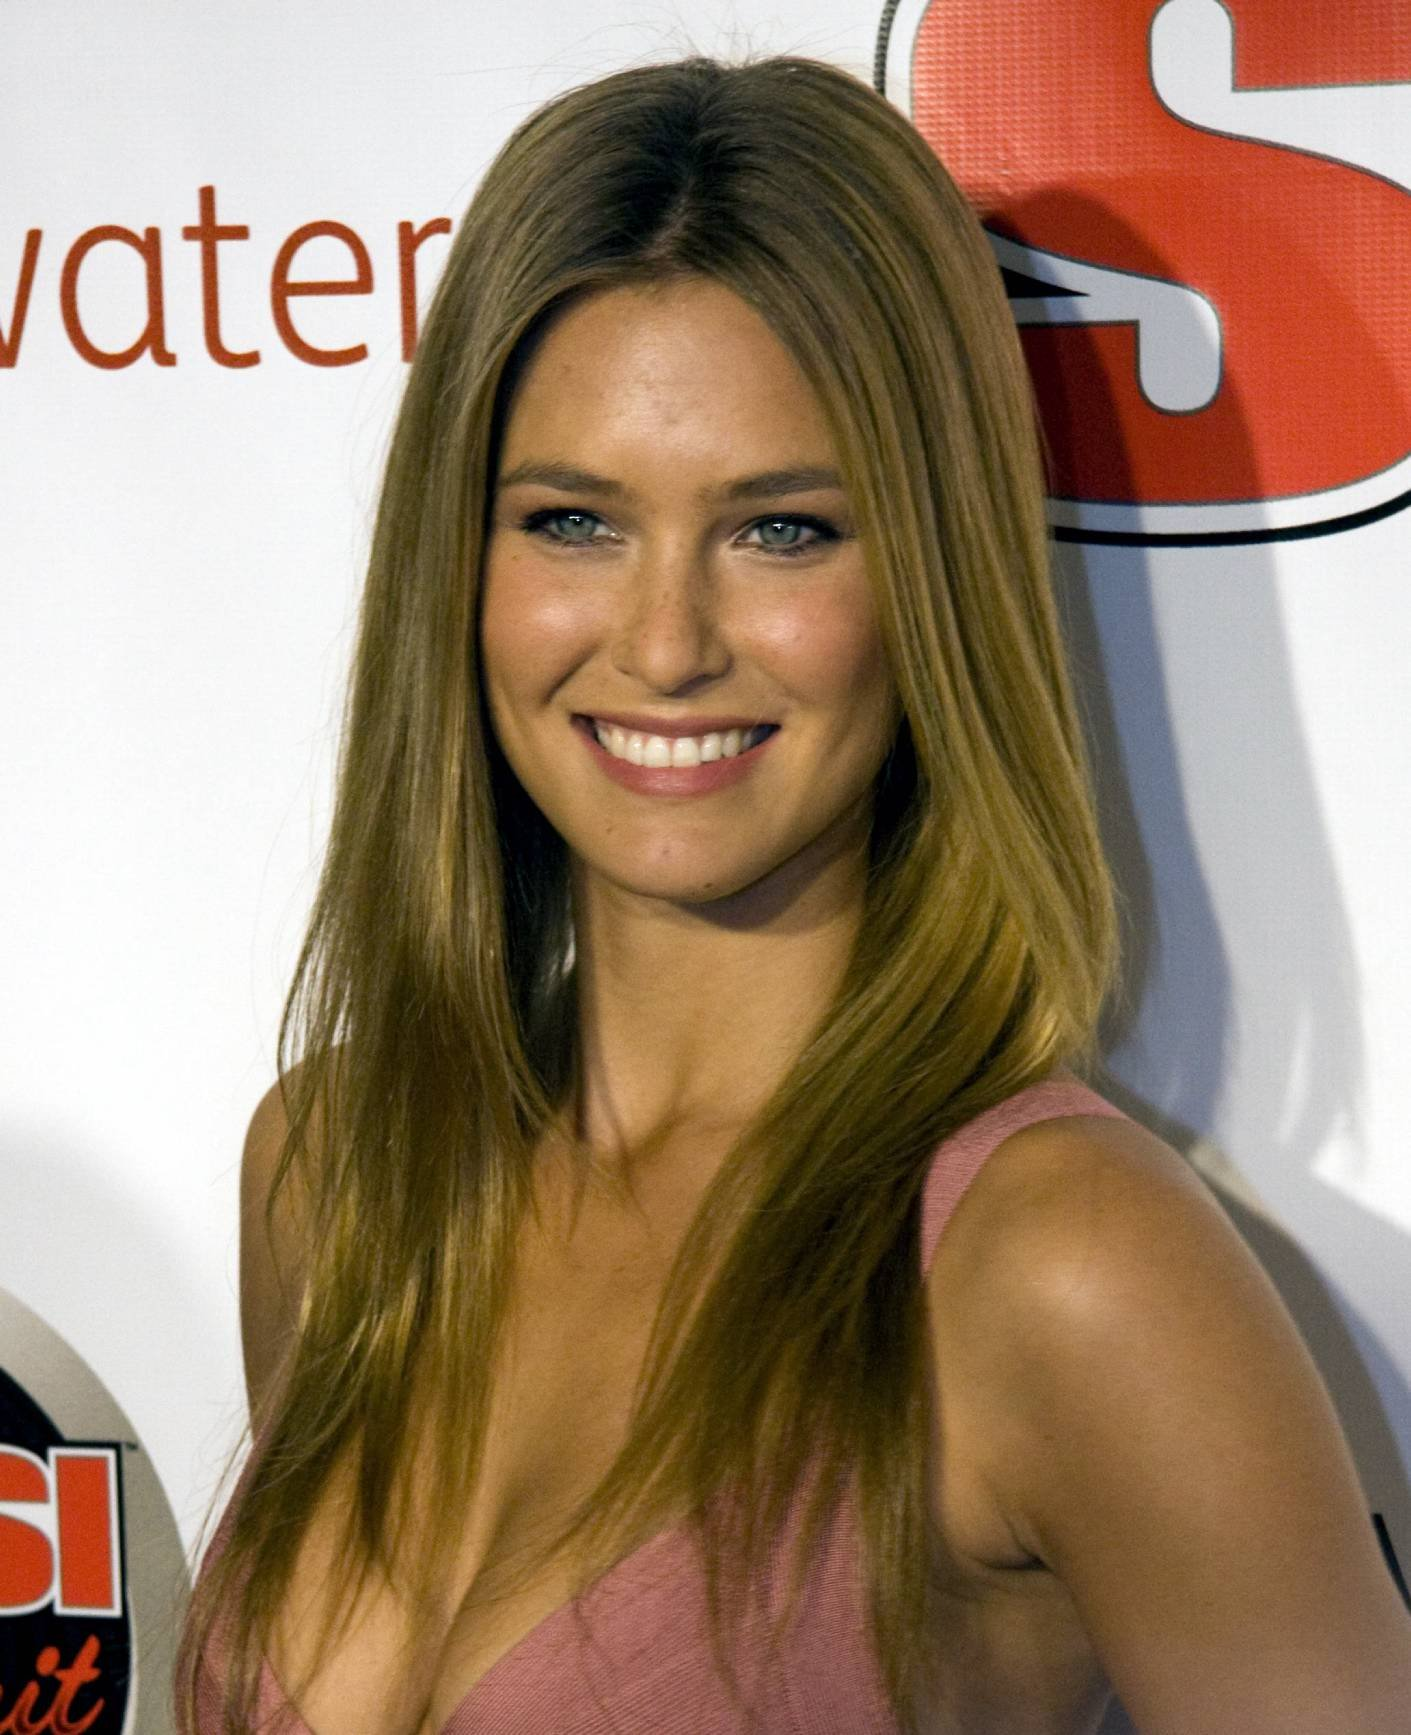 Bar Refaeli Sports Illustrated